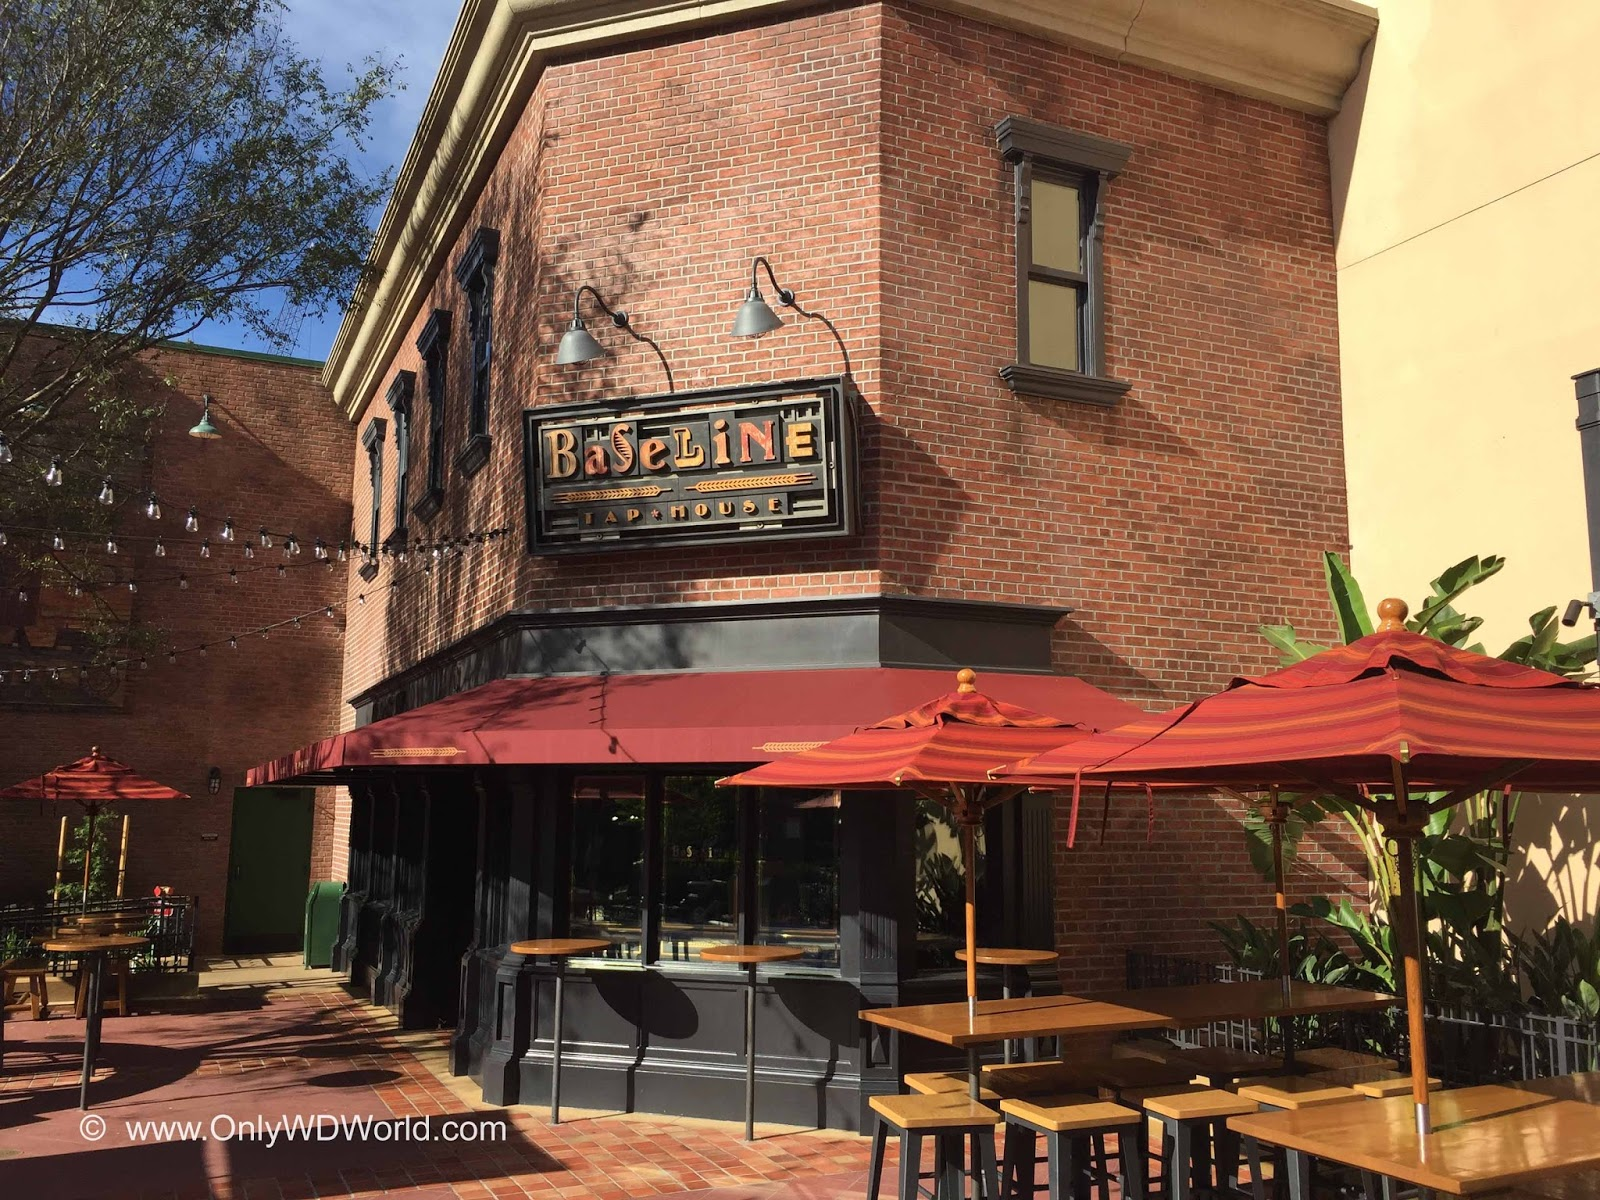 Review of Baseline Tap House At Disneys Hollywood Studios